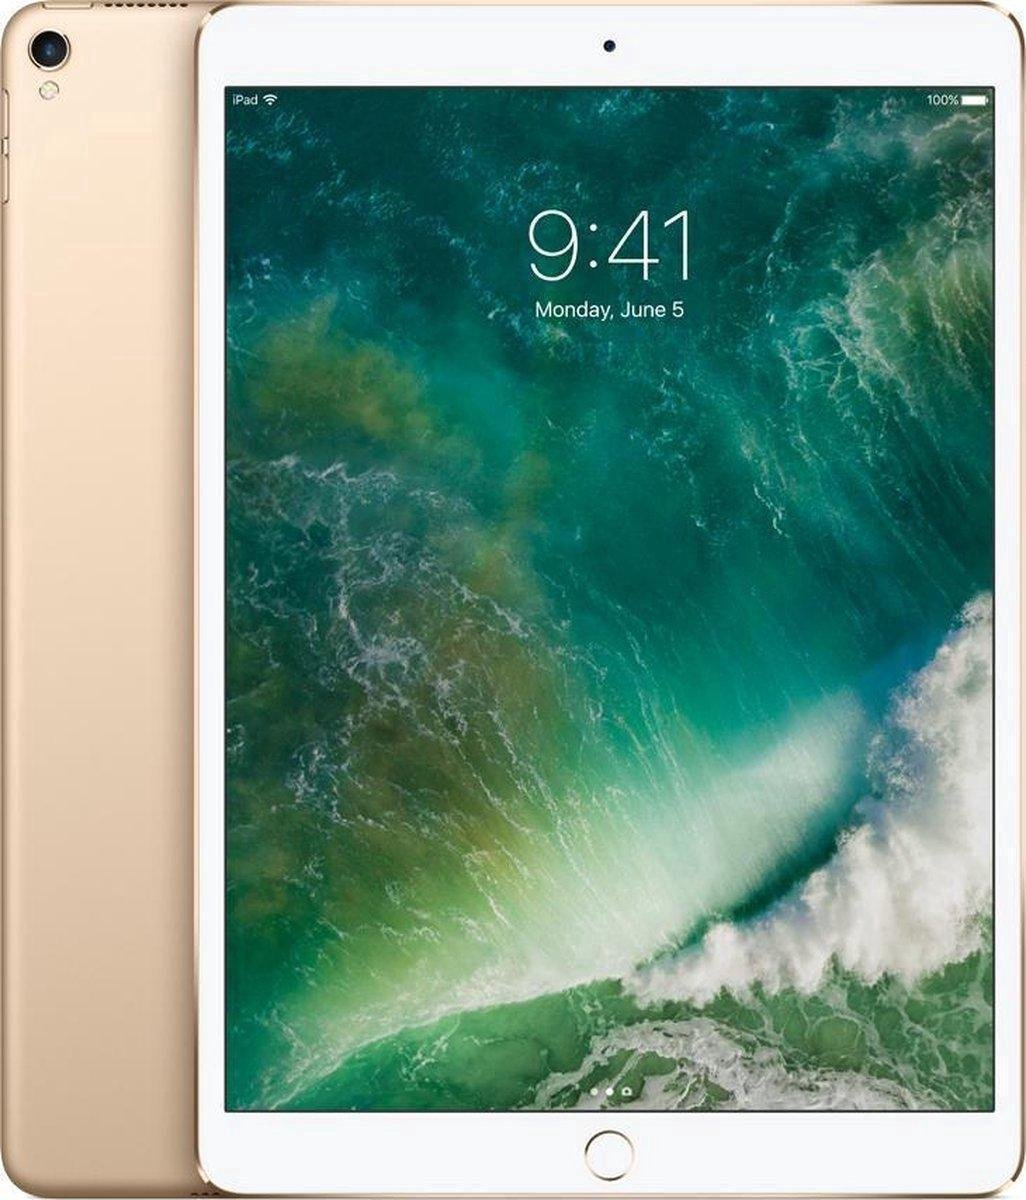 Apple Ipad pro 12.9 256gb wifi 2017 Gold refurbished A-grade door cathcomm